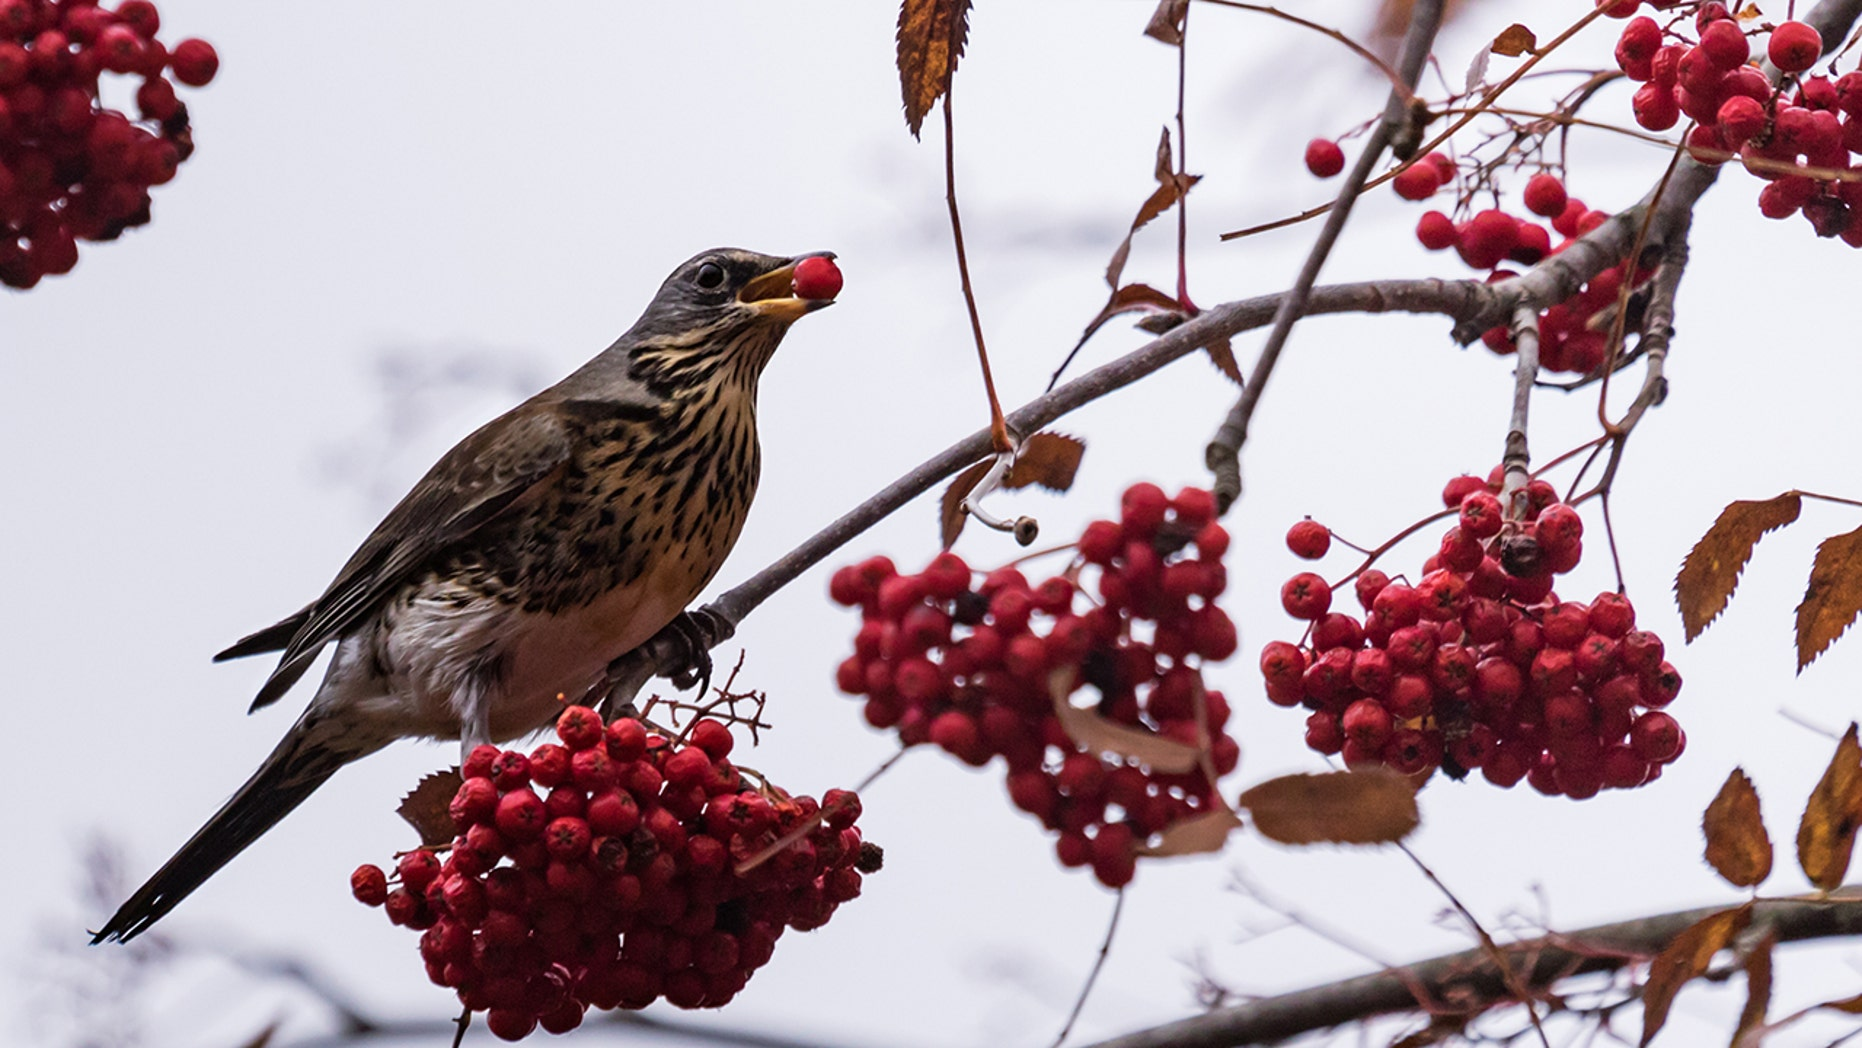 Birds Drunk on Fermented Berries are Causing Chaos in a Minnesota City